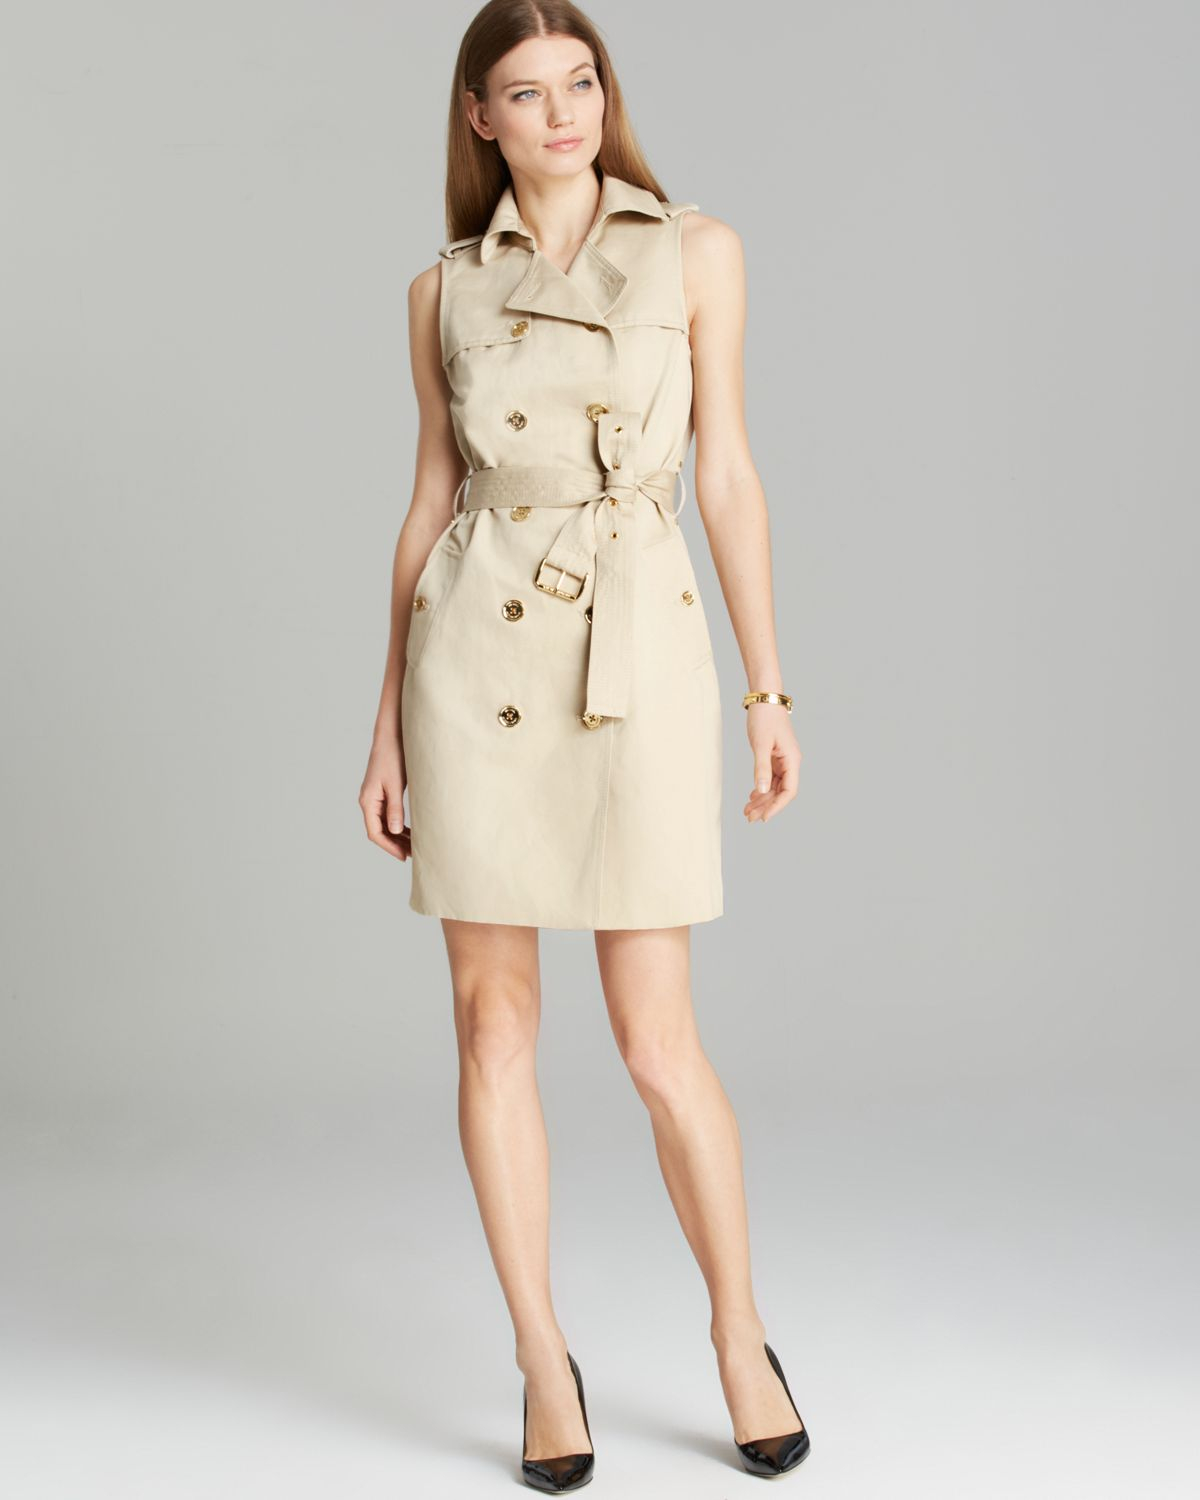 Lyst Michael michael kors Trench Dress in Natural